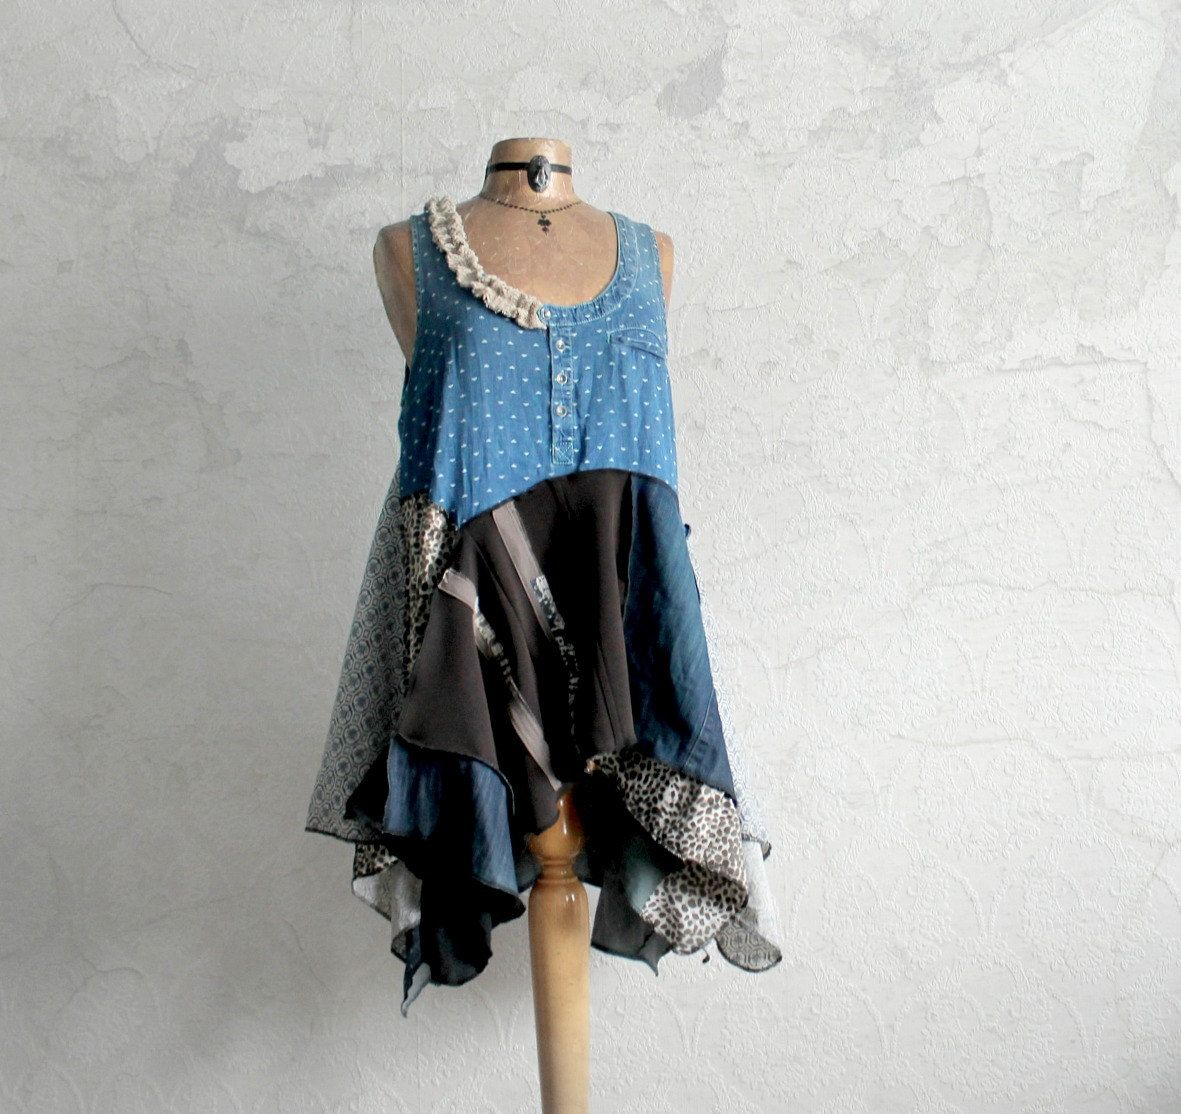 Lagenlook Tunic Upcycled Eco Shirt Bohemian Clothing Rustic Style Kerchief Top Denim Blue Womens Jumper Funky